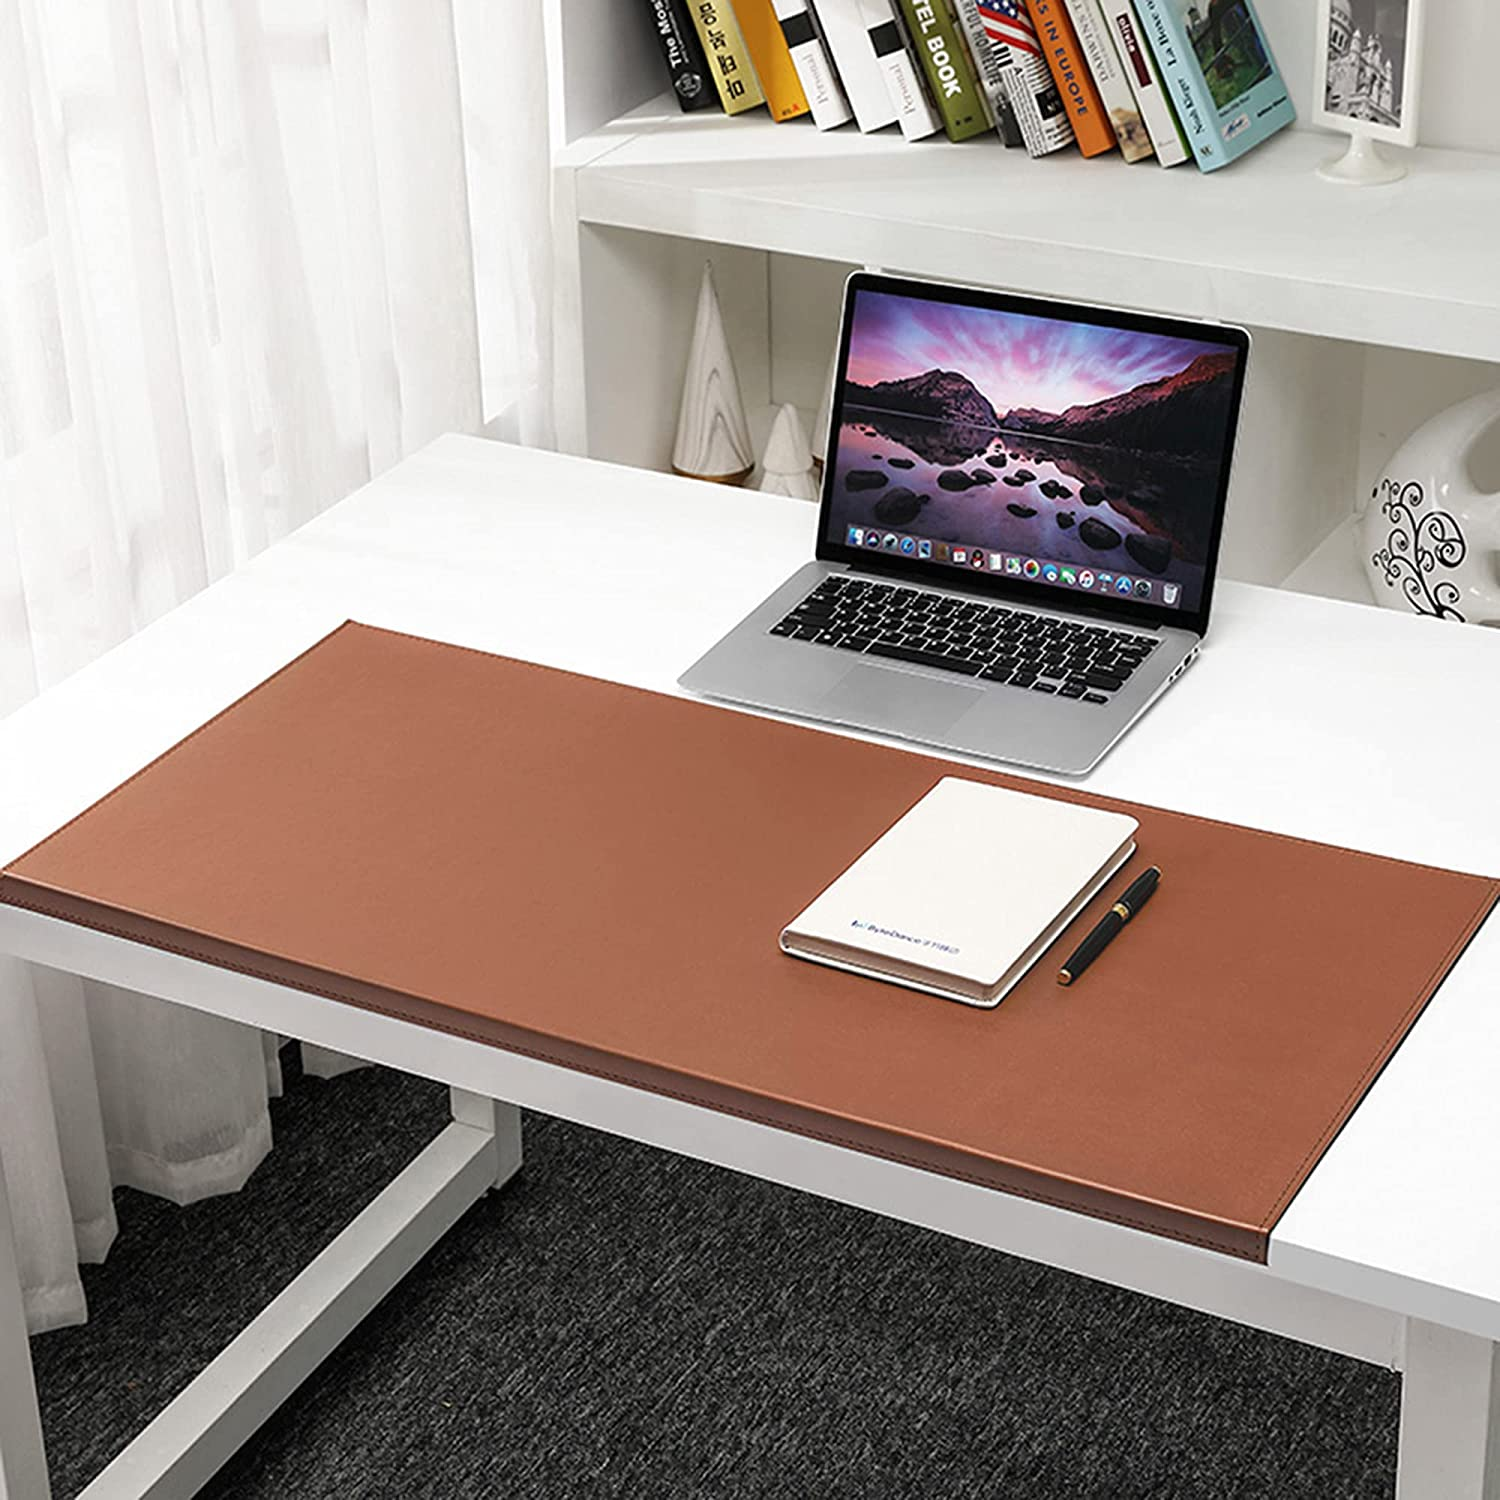 Leather Desk Max 76% OFF Pad Manufacturer direct delivery Gaming Writing Lip Protectio Edge with